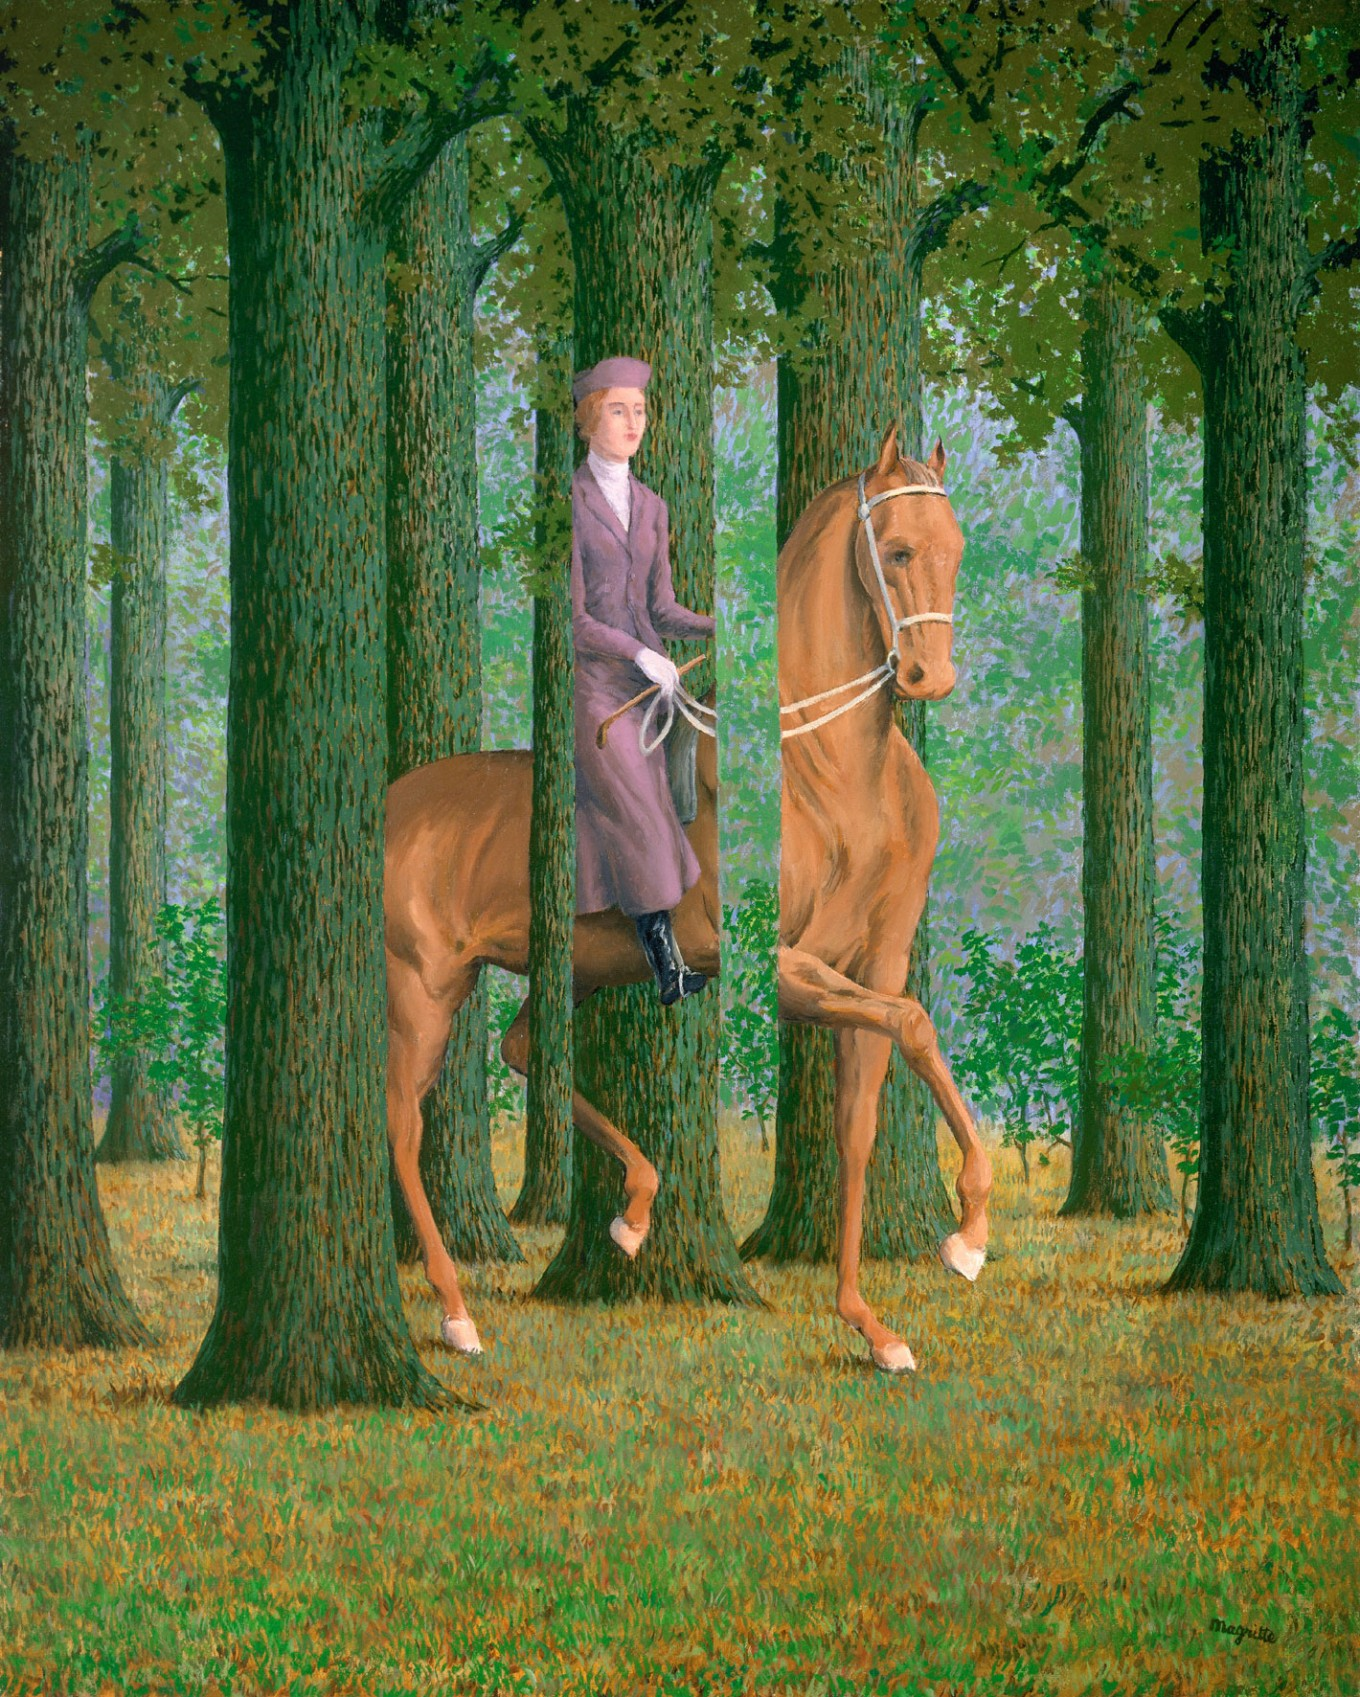 Marveling at Magritte's 'Treacherous Images' in Paris exhibition